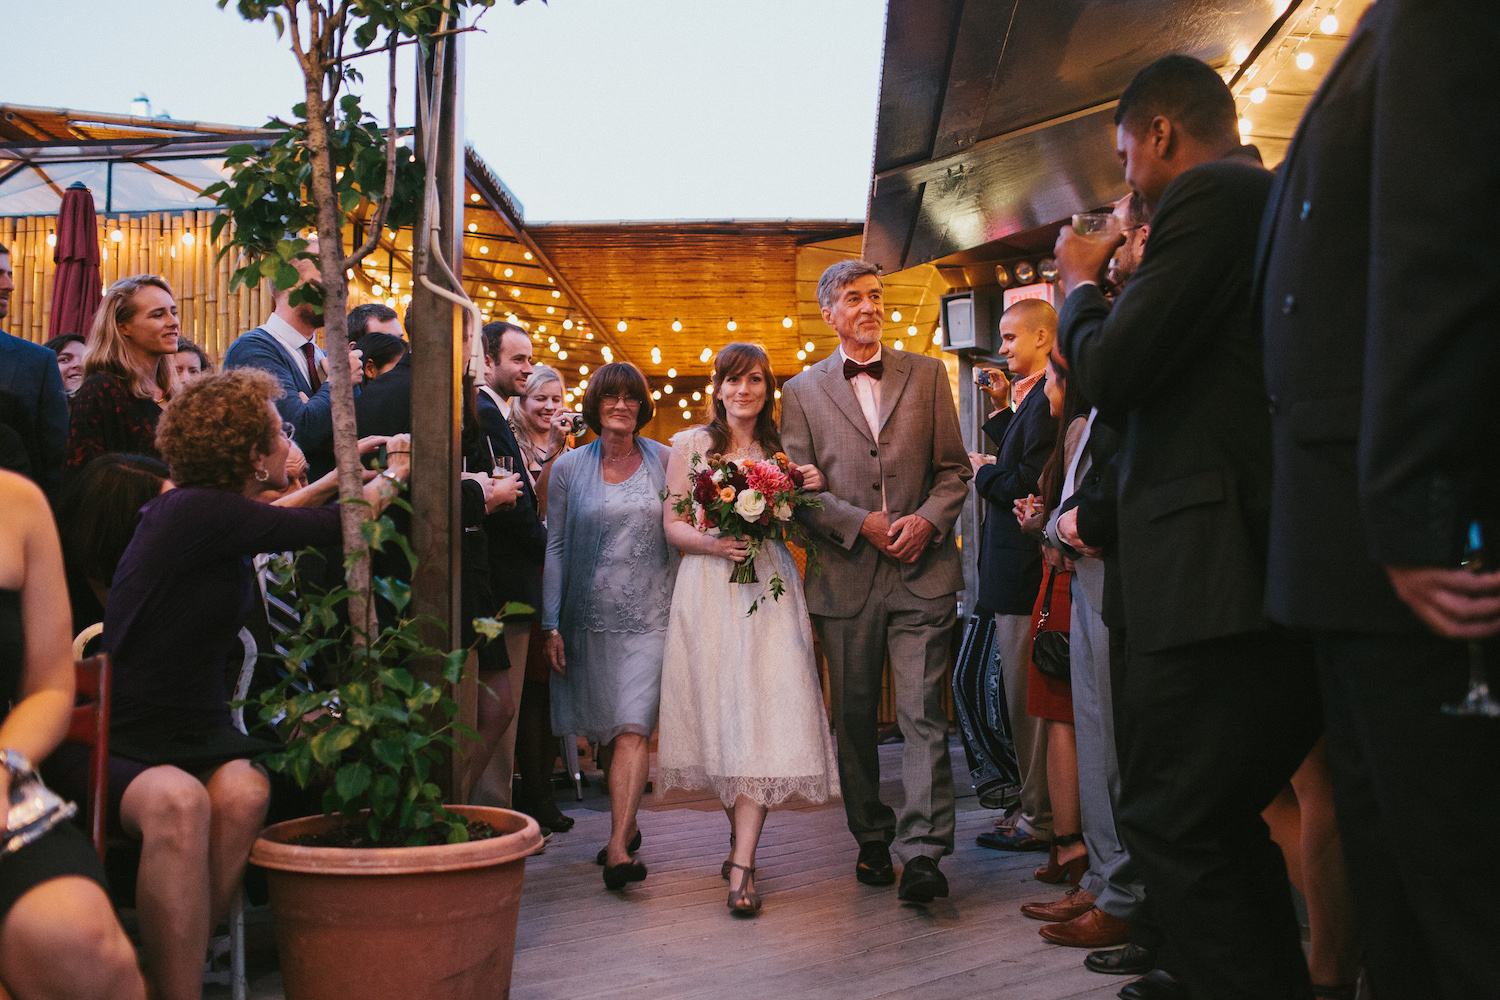 Full Aperture Floral & Corey Torpie Photography  - Brooklyn Wedding - 87.jpeg